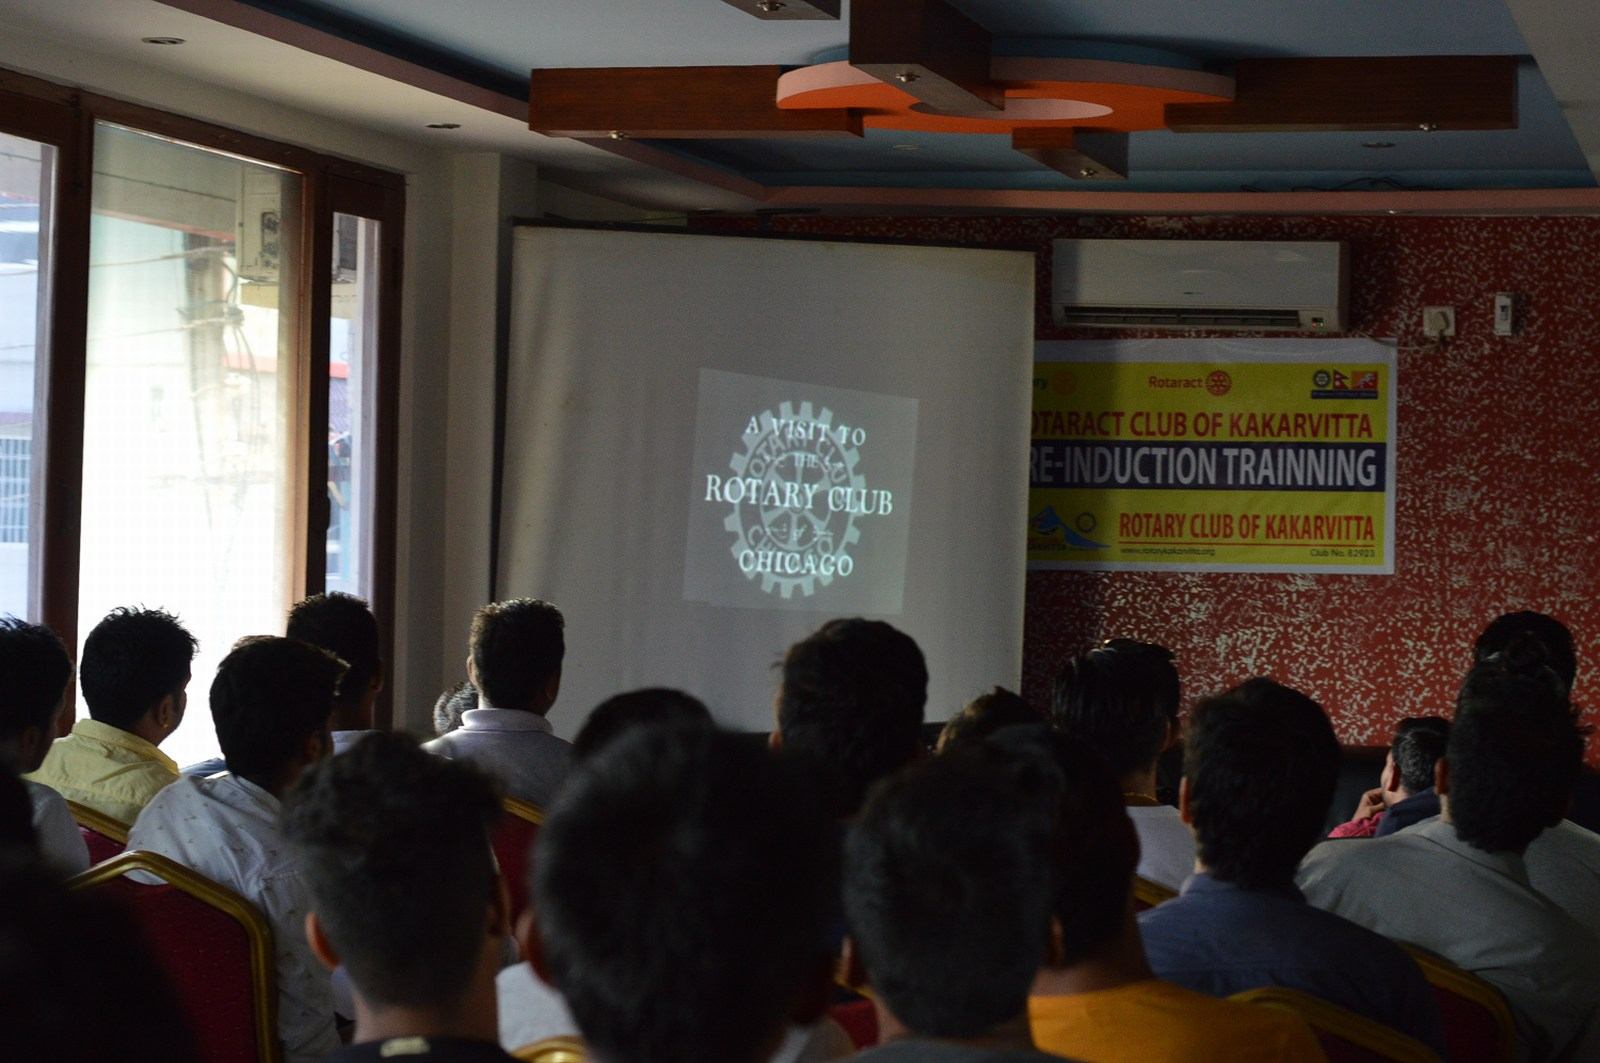 Pre-Induction-Training-of-Rotaract-Club-of-Kakarvitta-Rotary-Club-of-Kakarvitta-15